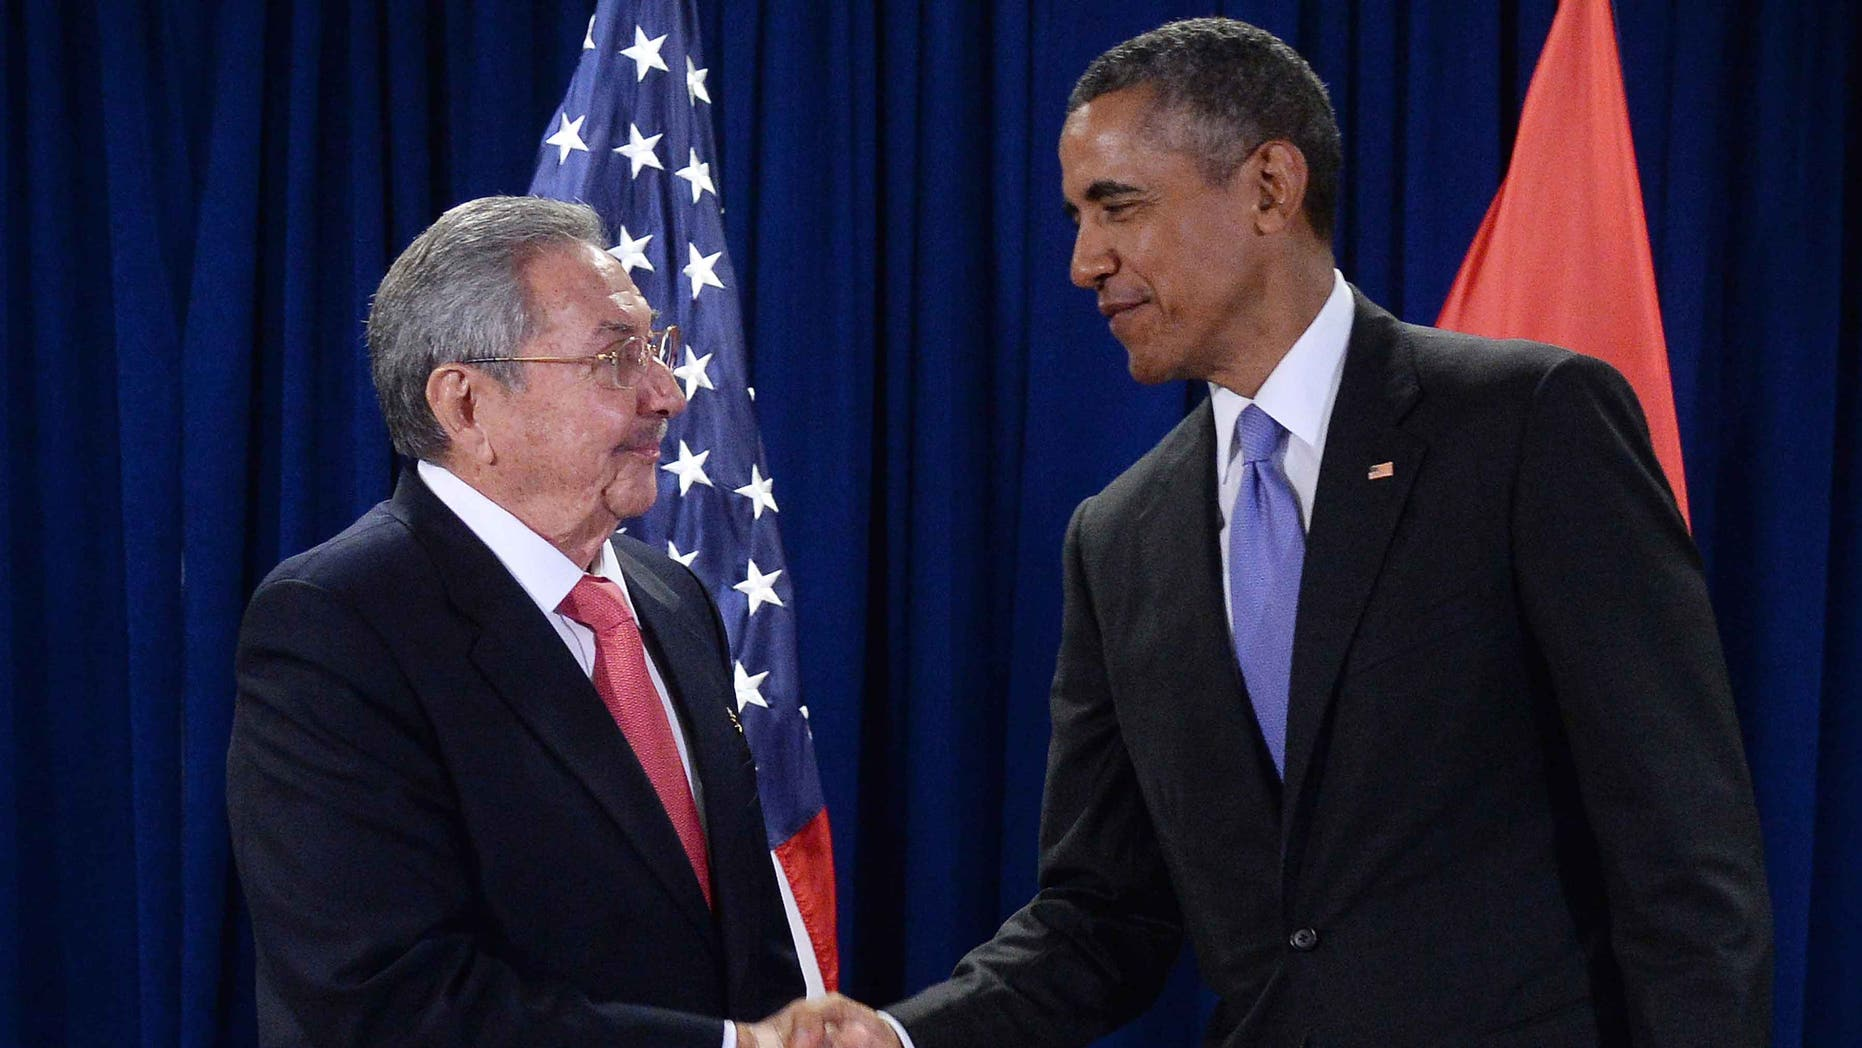 First Sitting President To Visit >> President Obama To Become The First Sitting President To Visit Cuba